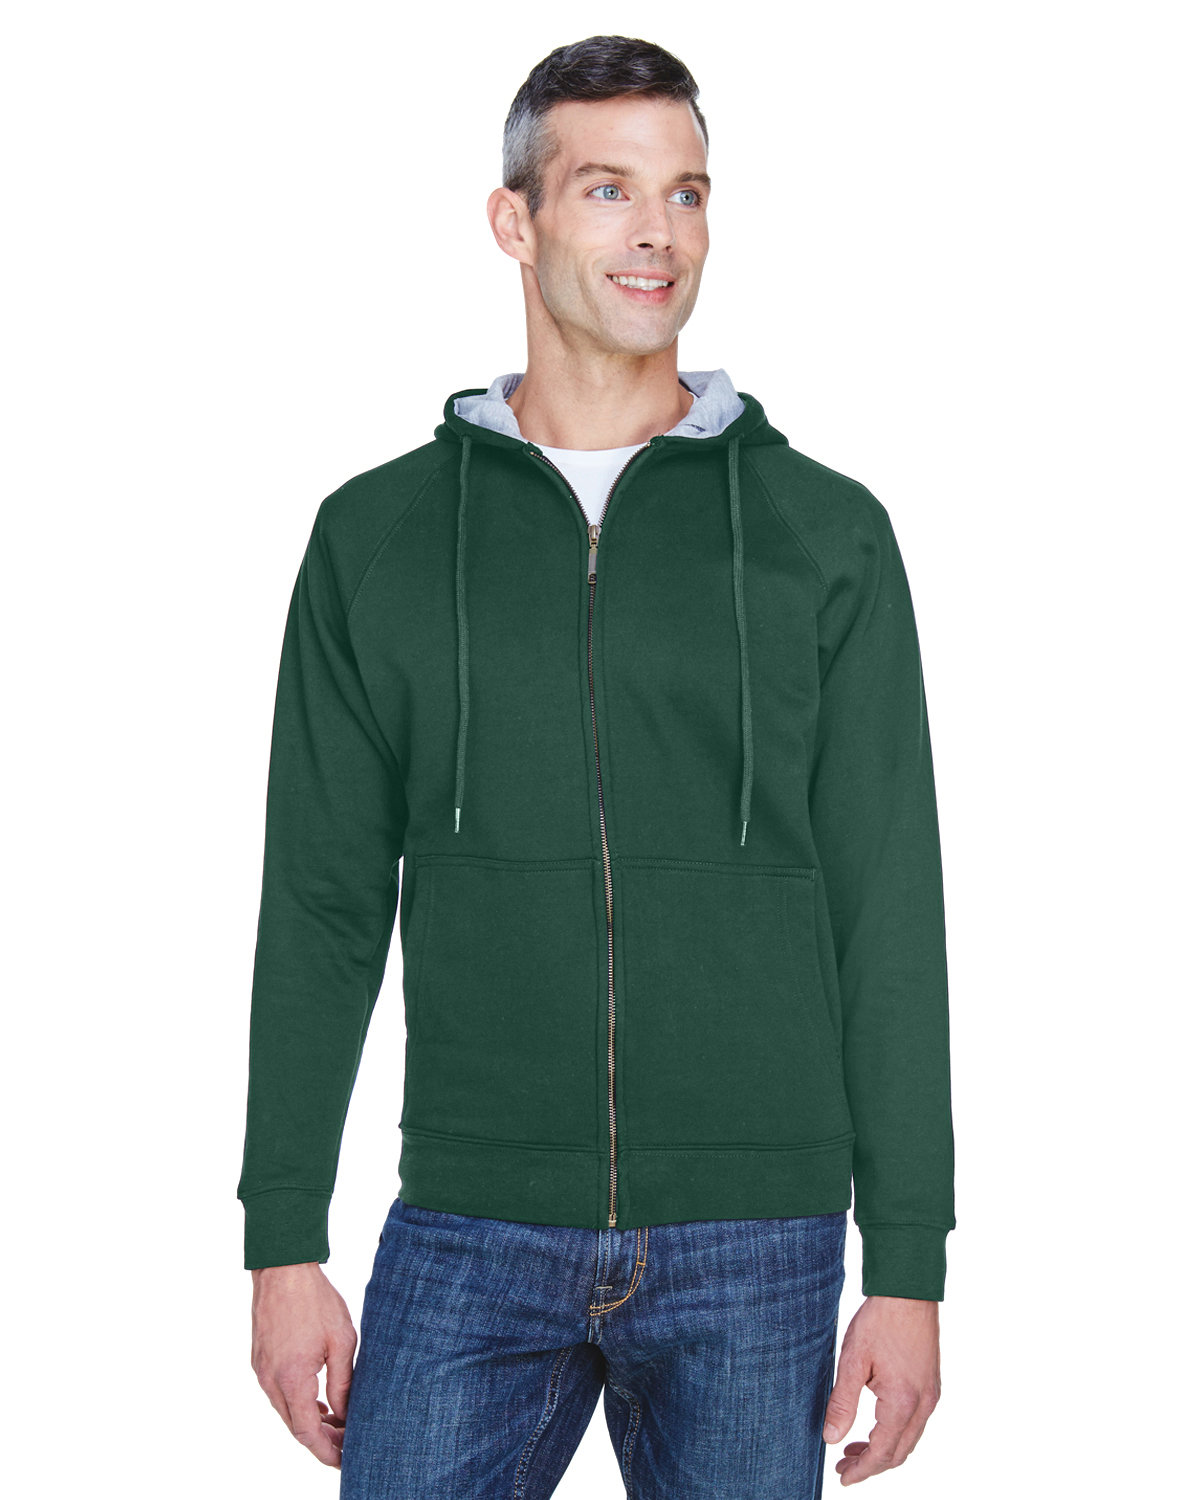 UltraClub Adult Rugged Wear Thermal-Lined Full-Zip Fleece Hooded Sweatshirt FOR GRN/ HTH GRY